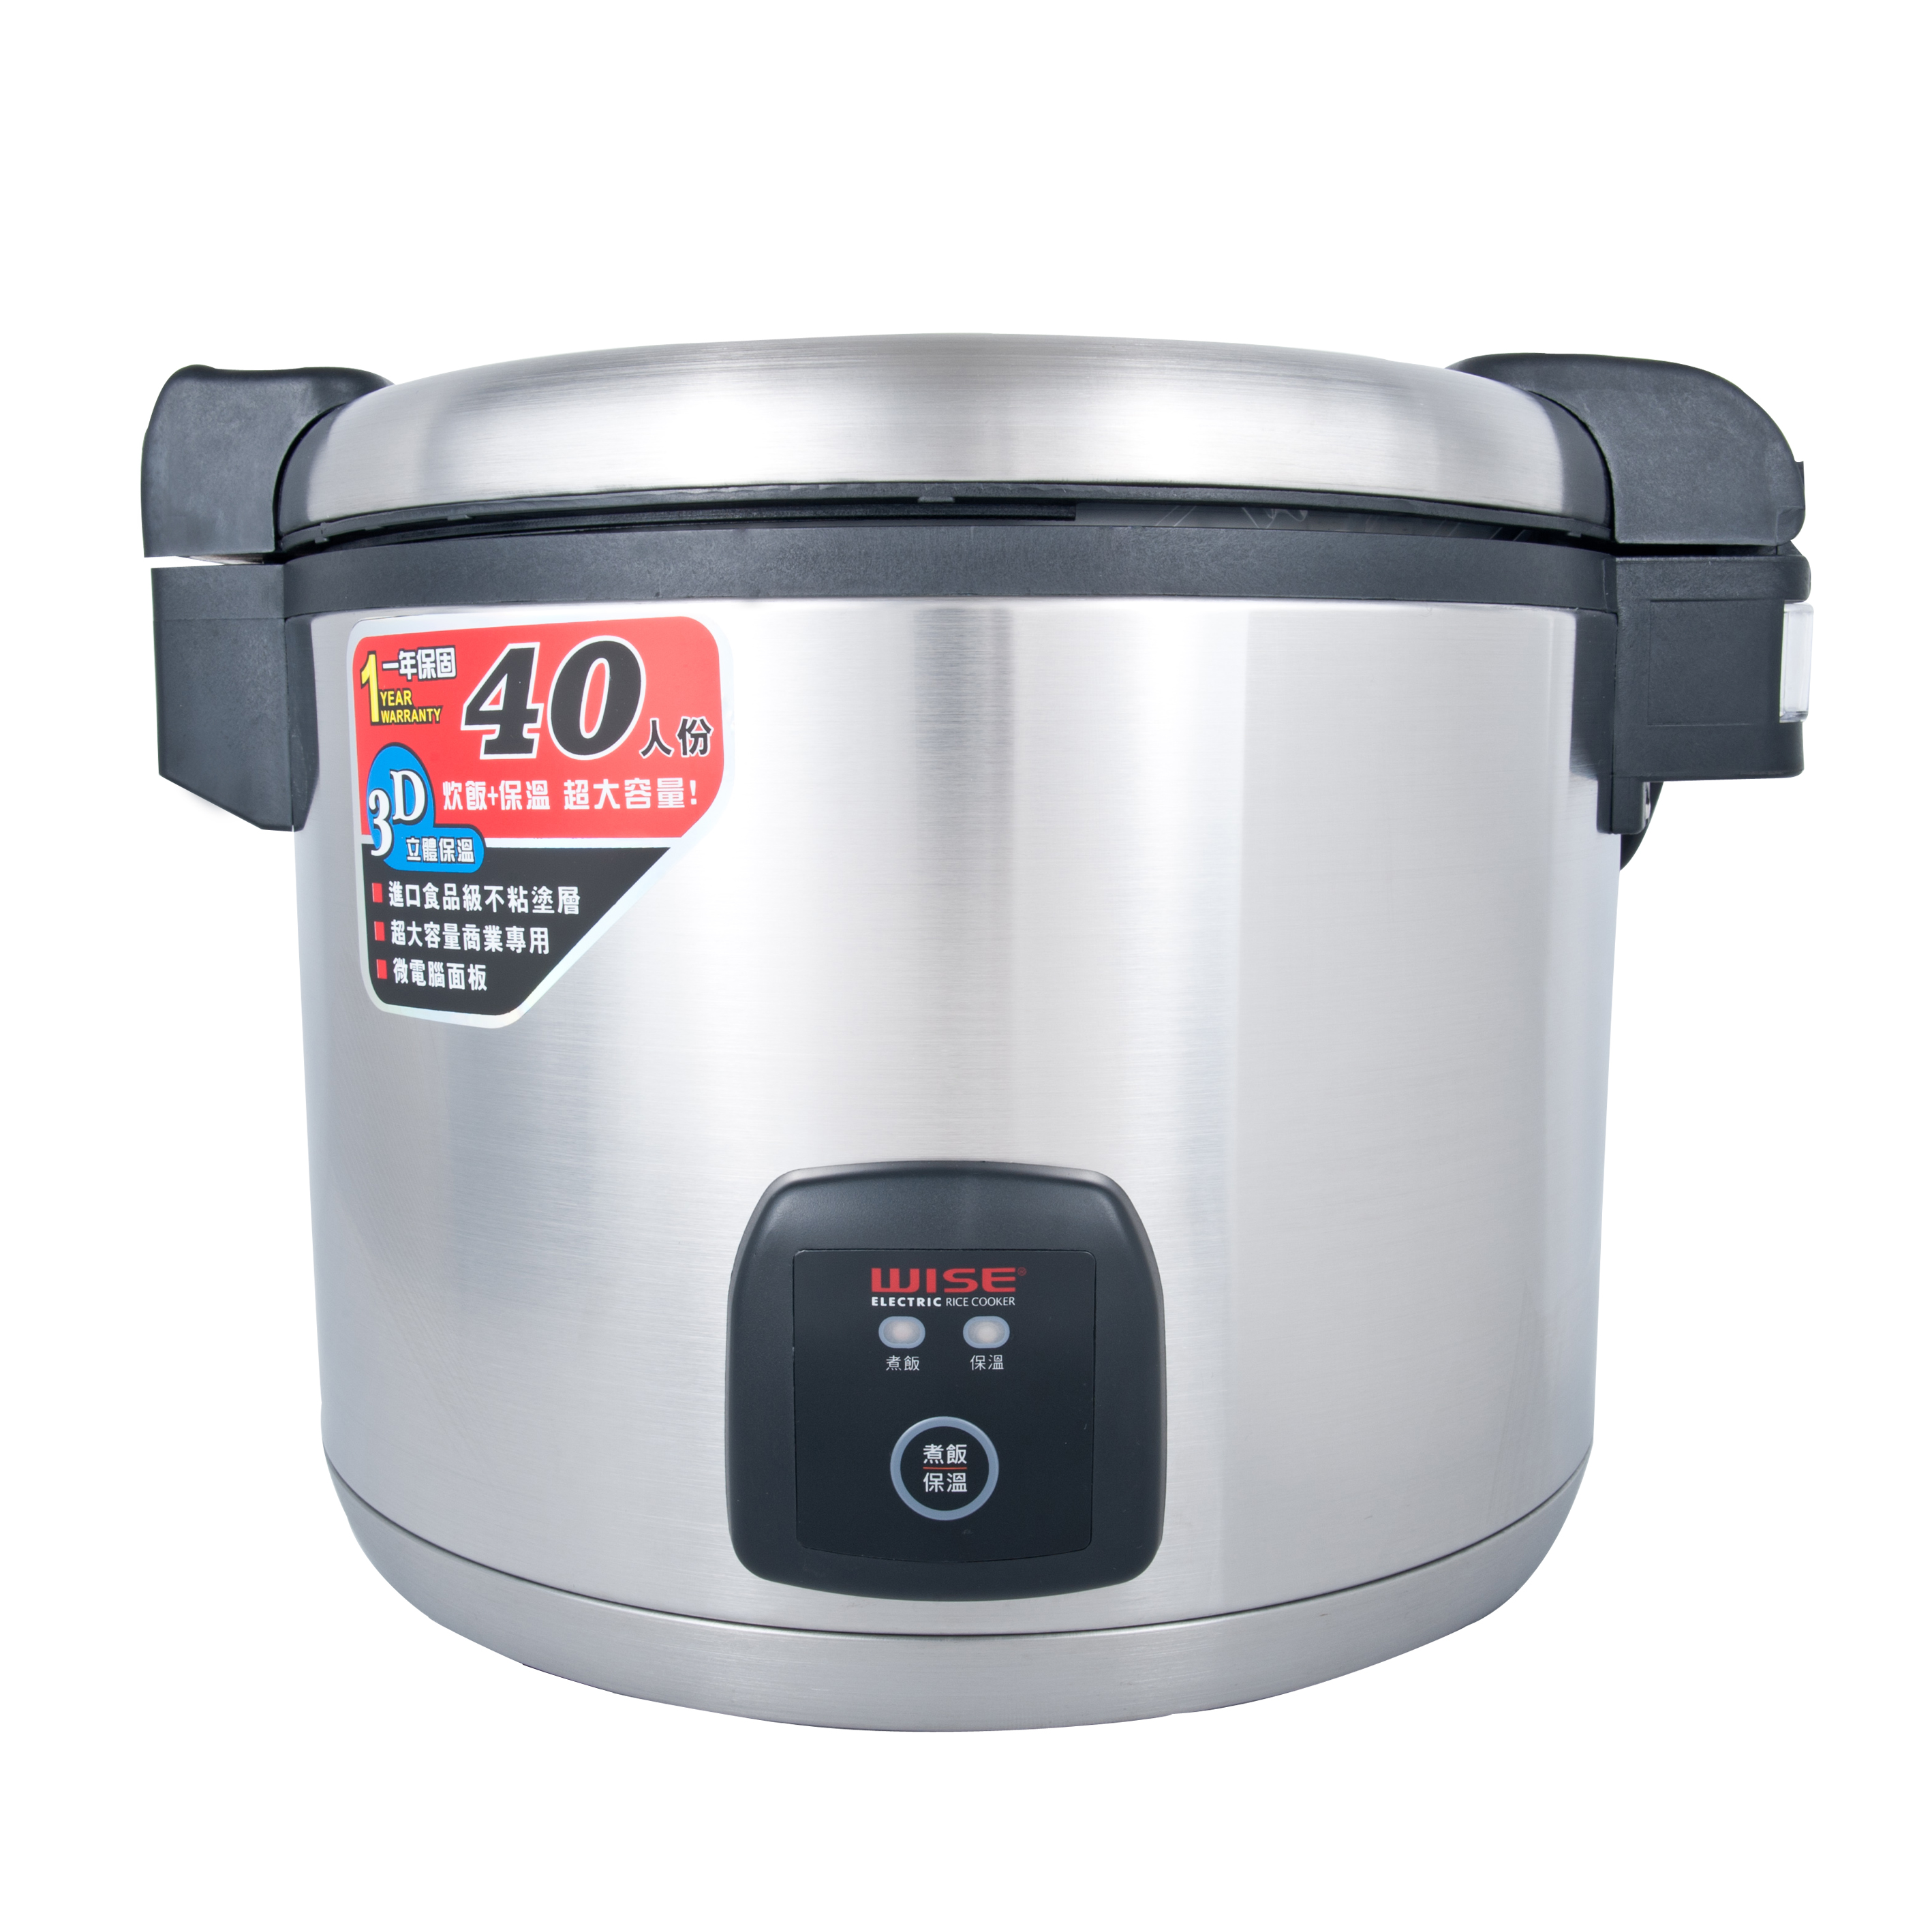 rice cooker Buy electric rice cookers online at homeshop18 select from all major brands such as bajaj, prestige, crystal, philips, usha, panasonic and more with free shipping.